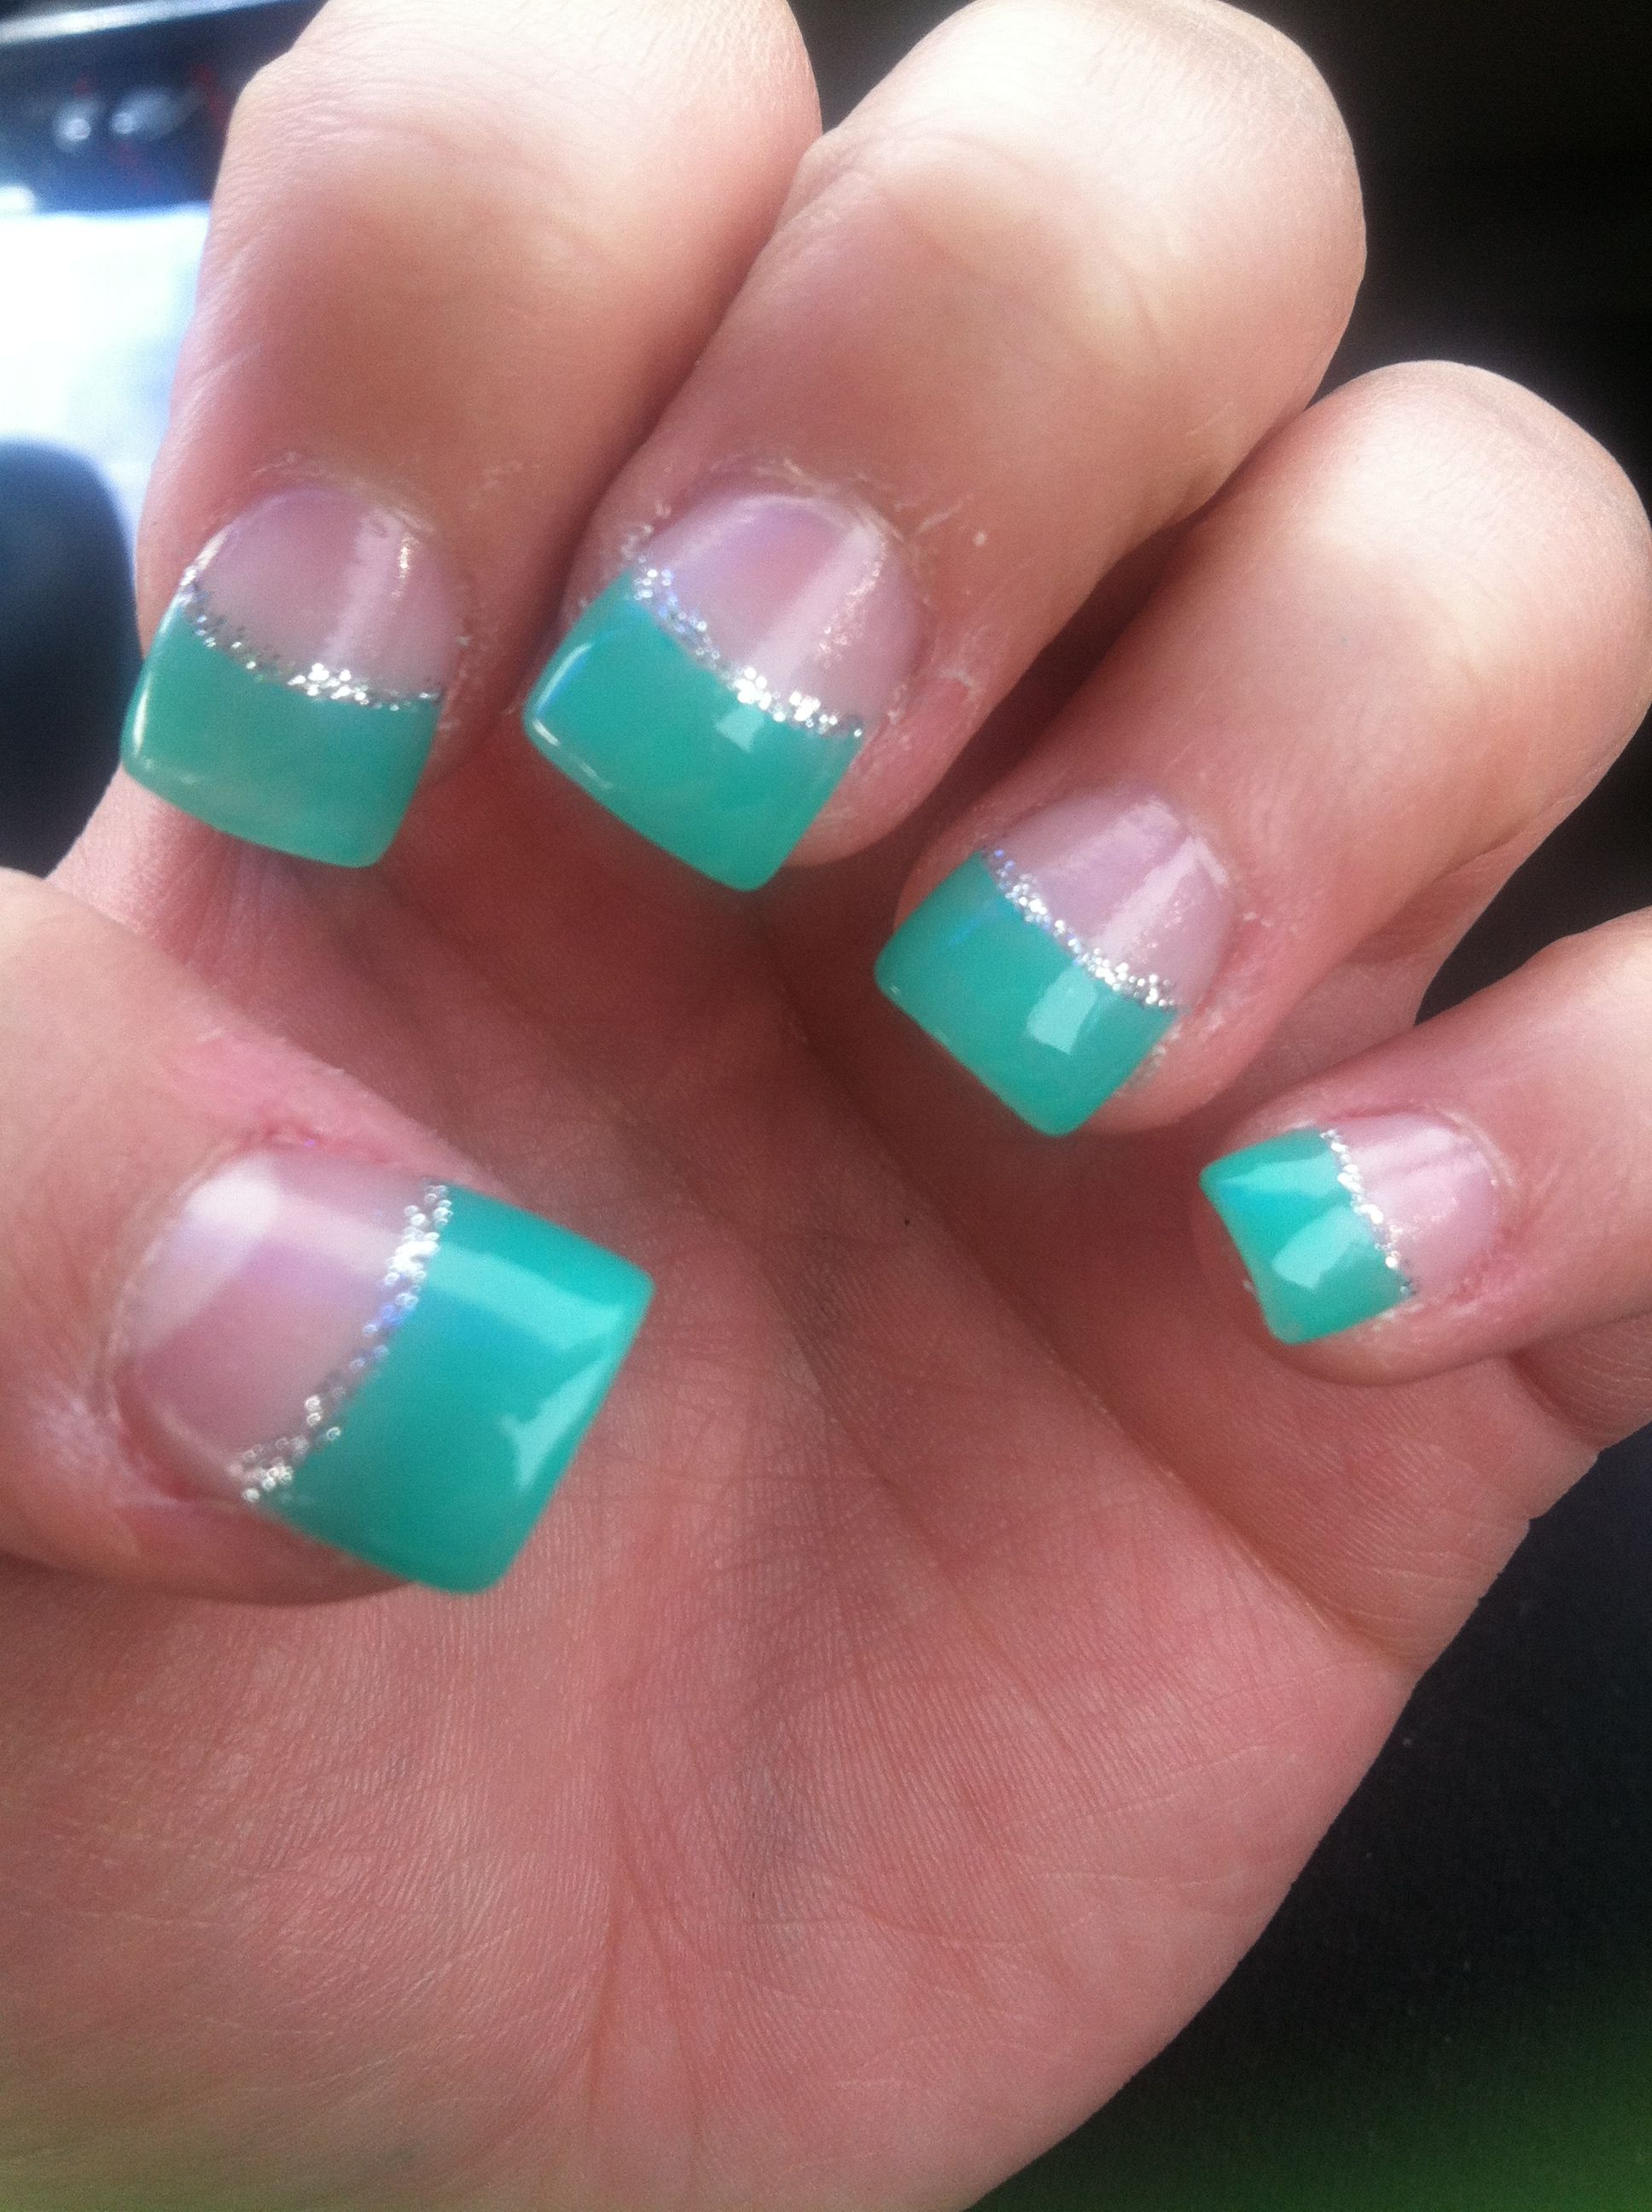 Acrylic Nails Teal Ish Grey Sparkle Lining French Tips Cute From Qt Nail Salon